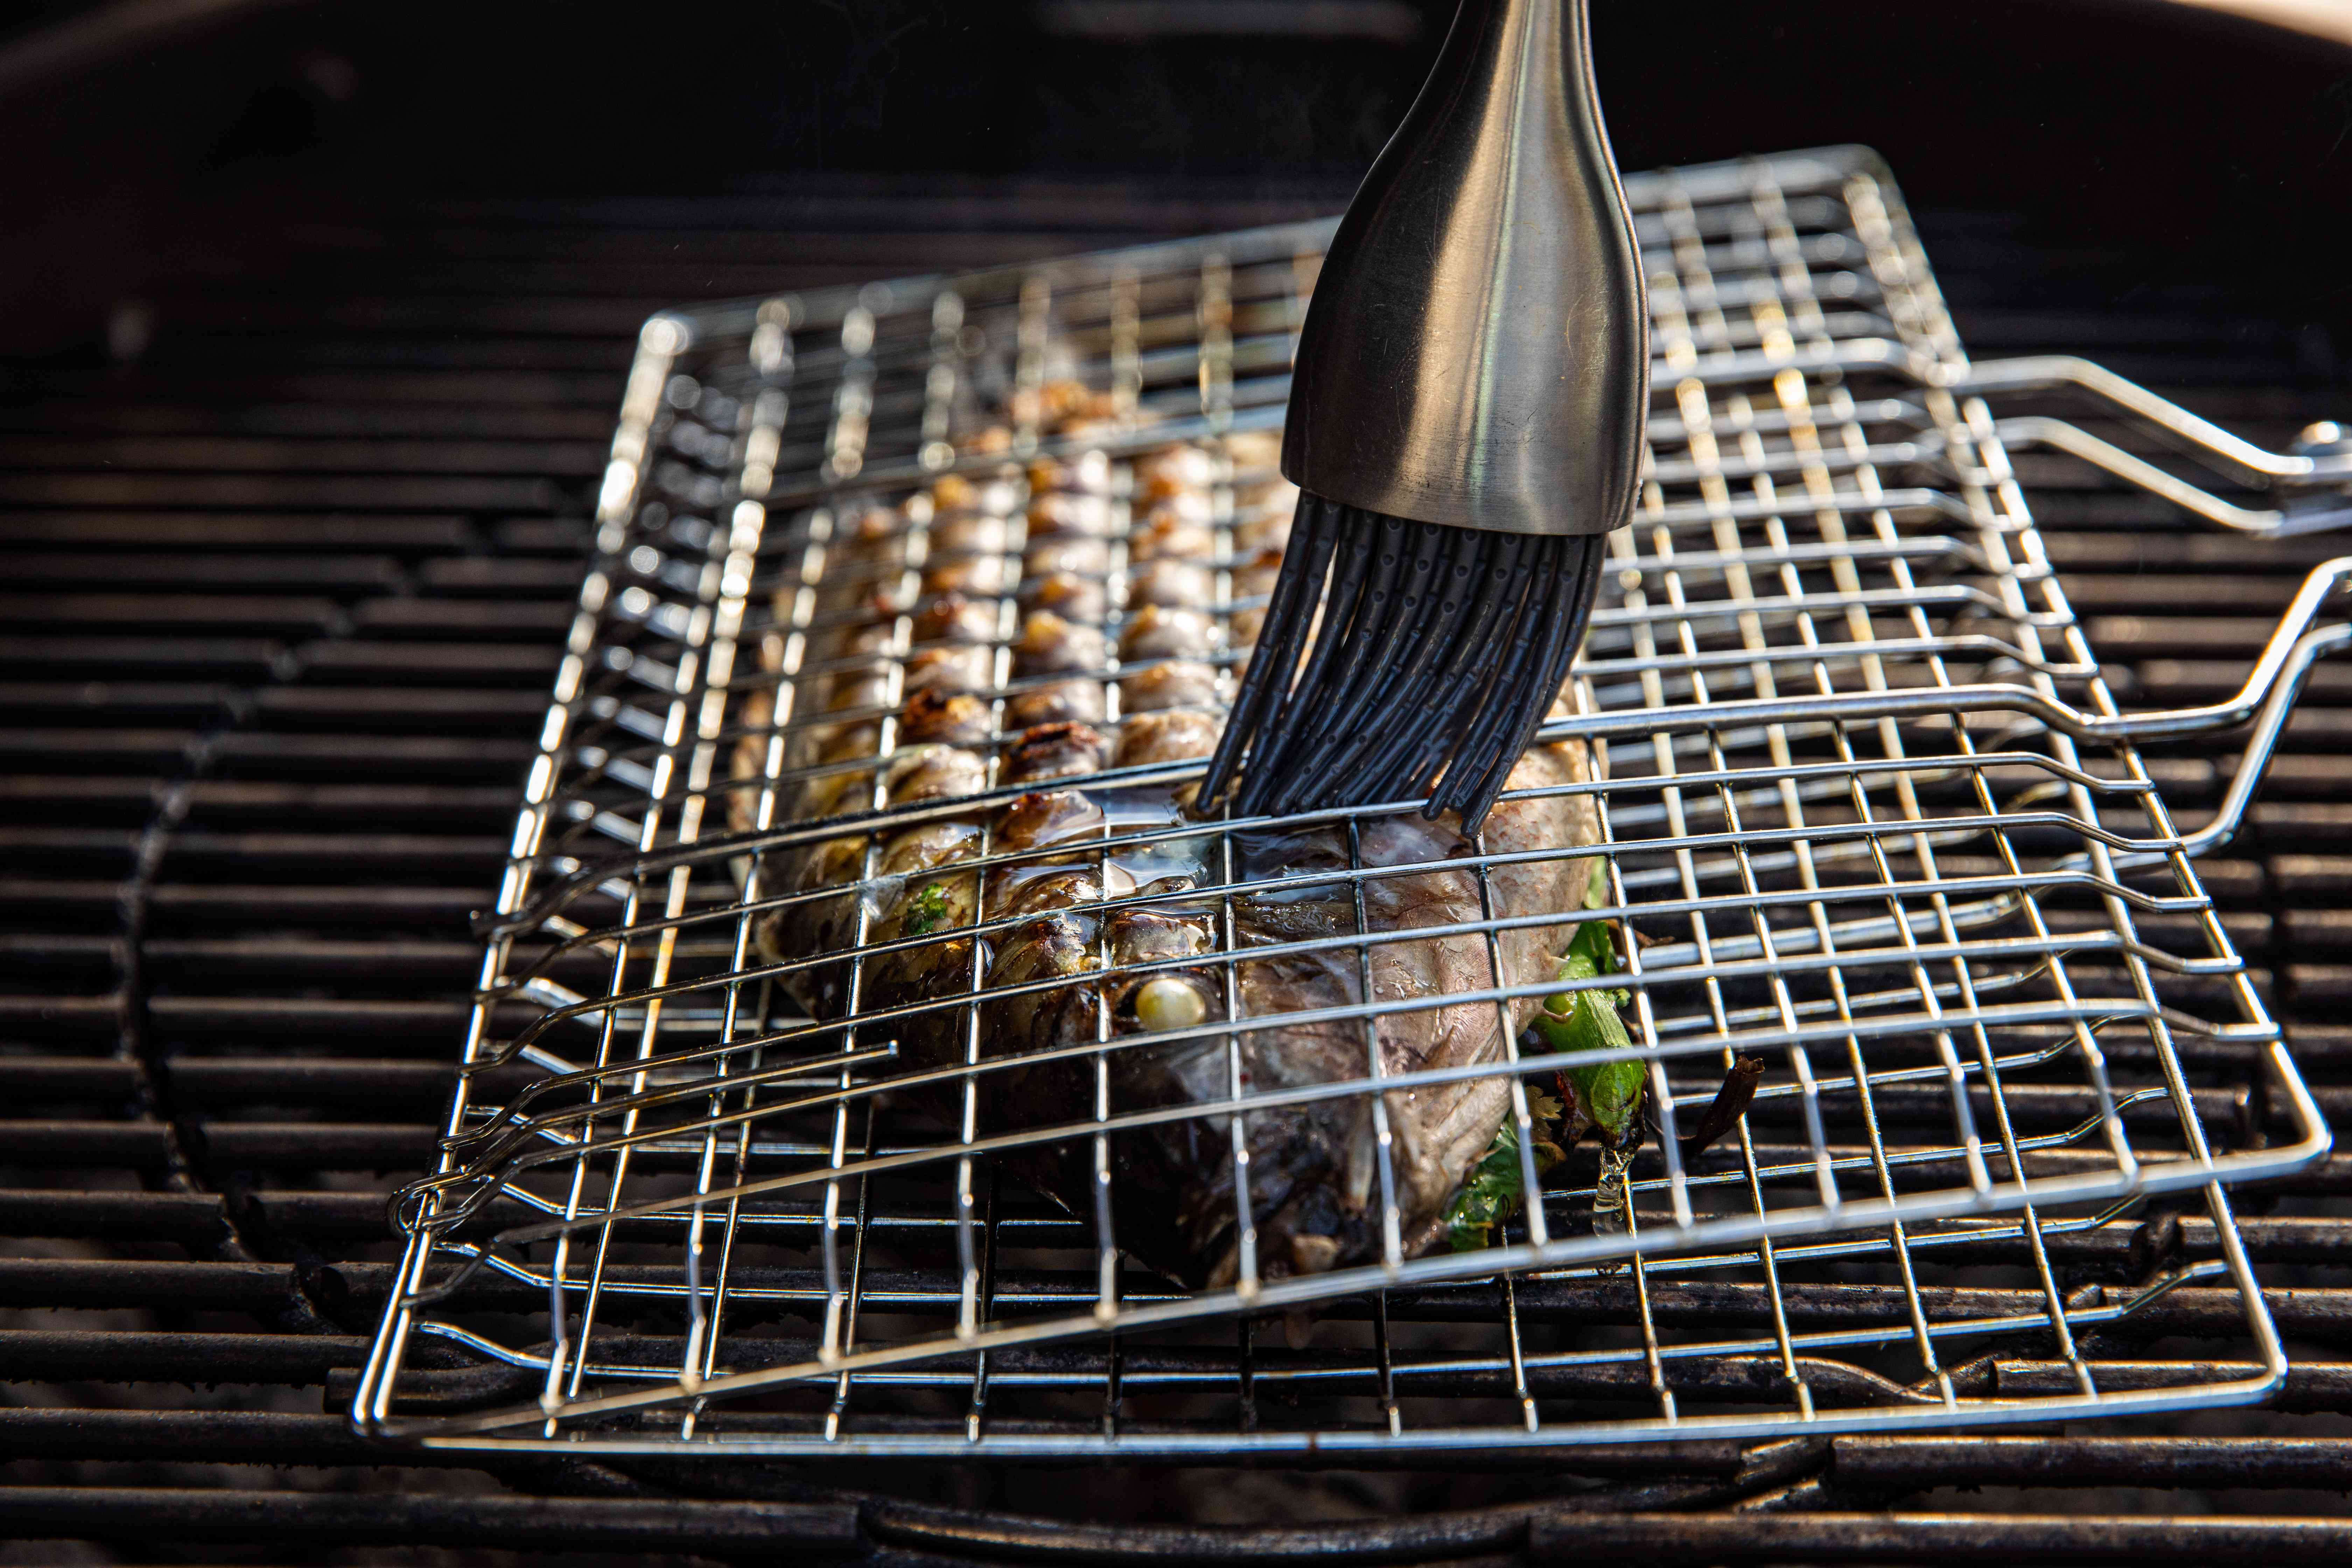 Grilled whole fish stuffed with herbs and chilies in a grill cage and brushed with oil.